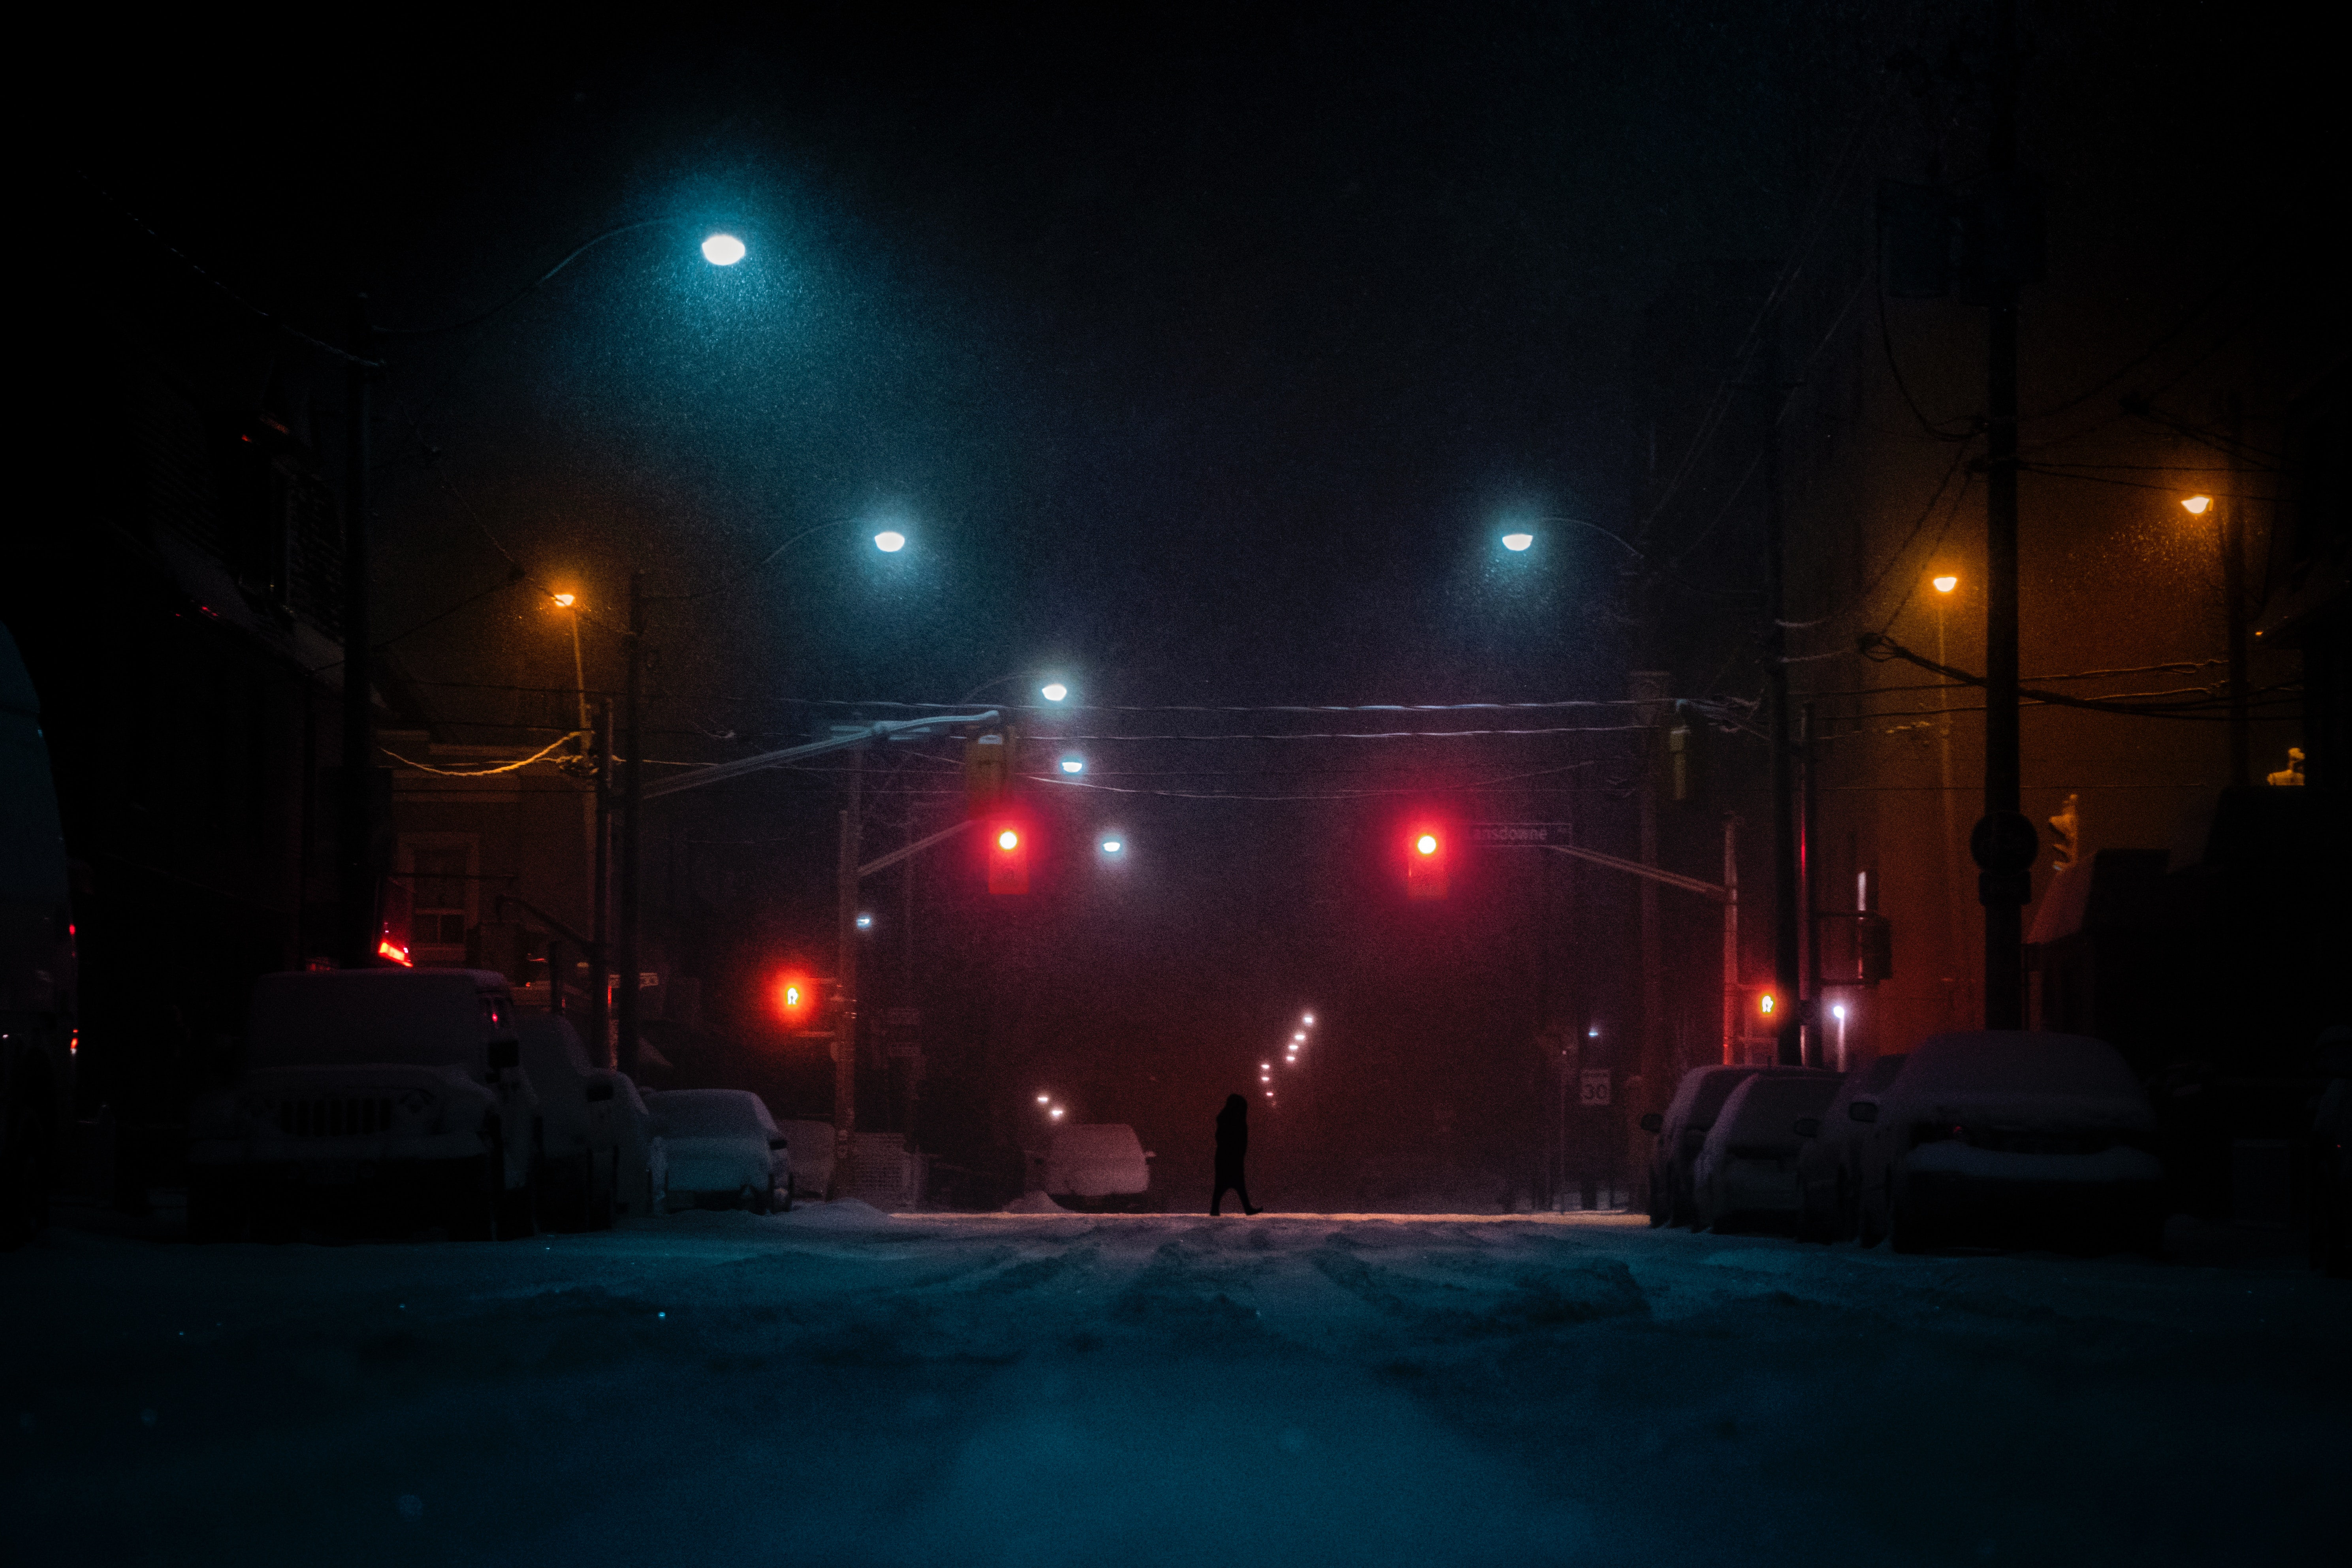 143677 free wallpaper 480x800 for phone, download images Night, Snow, Dark, Silhouette, Street 480x800 for mobile